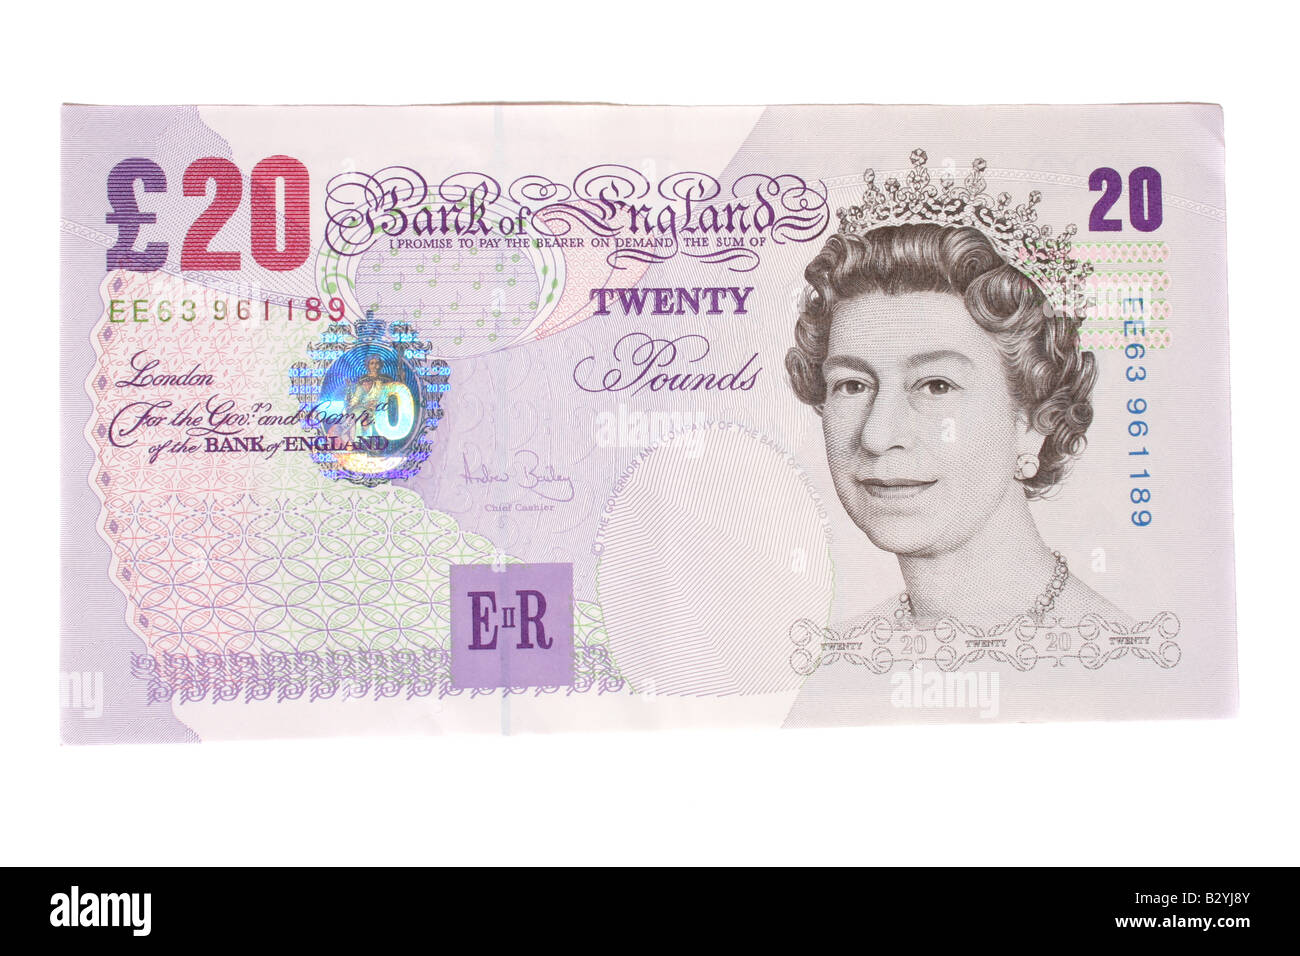 The front of a twenty pound English bank note. - Stock Image